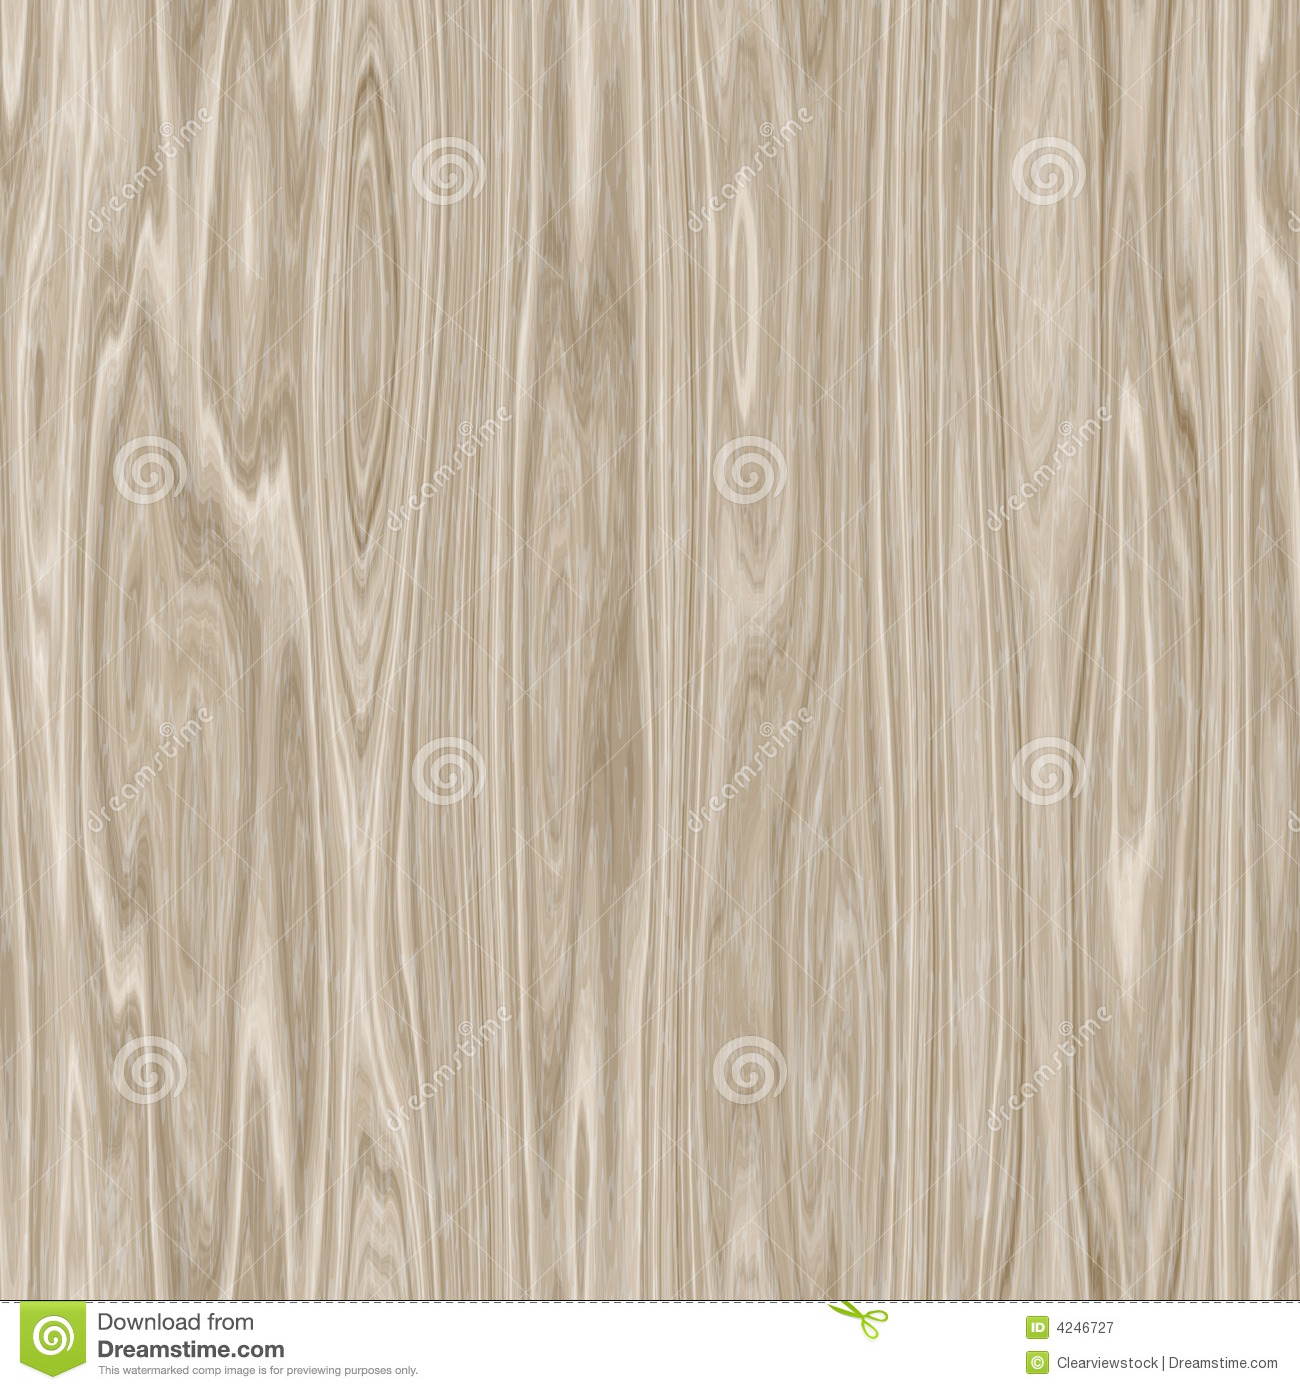 hight resolution of wood grain background texture